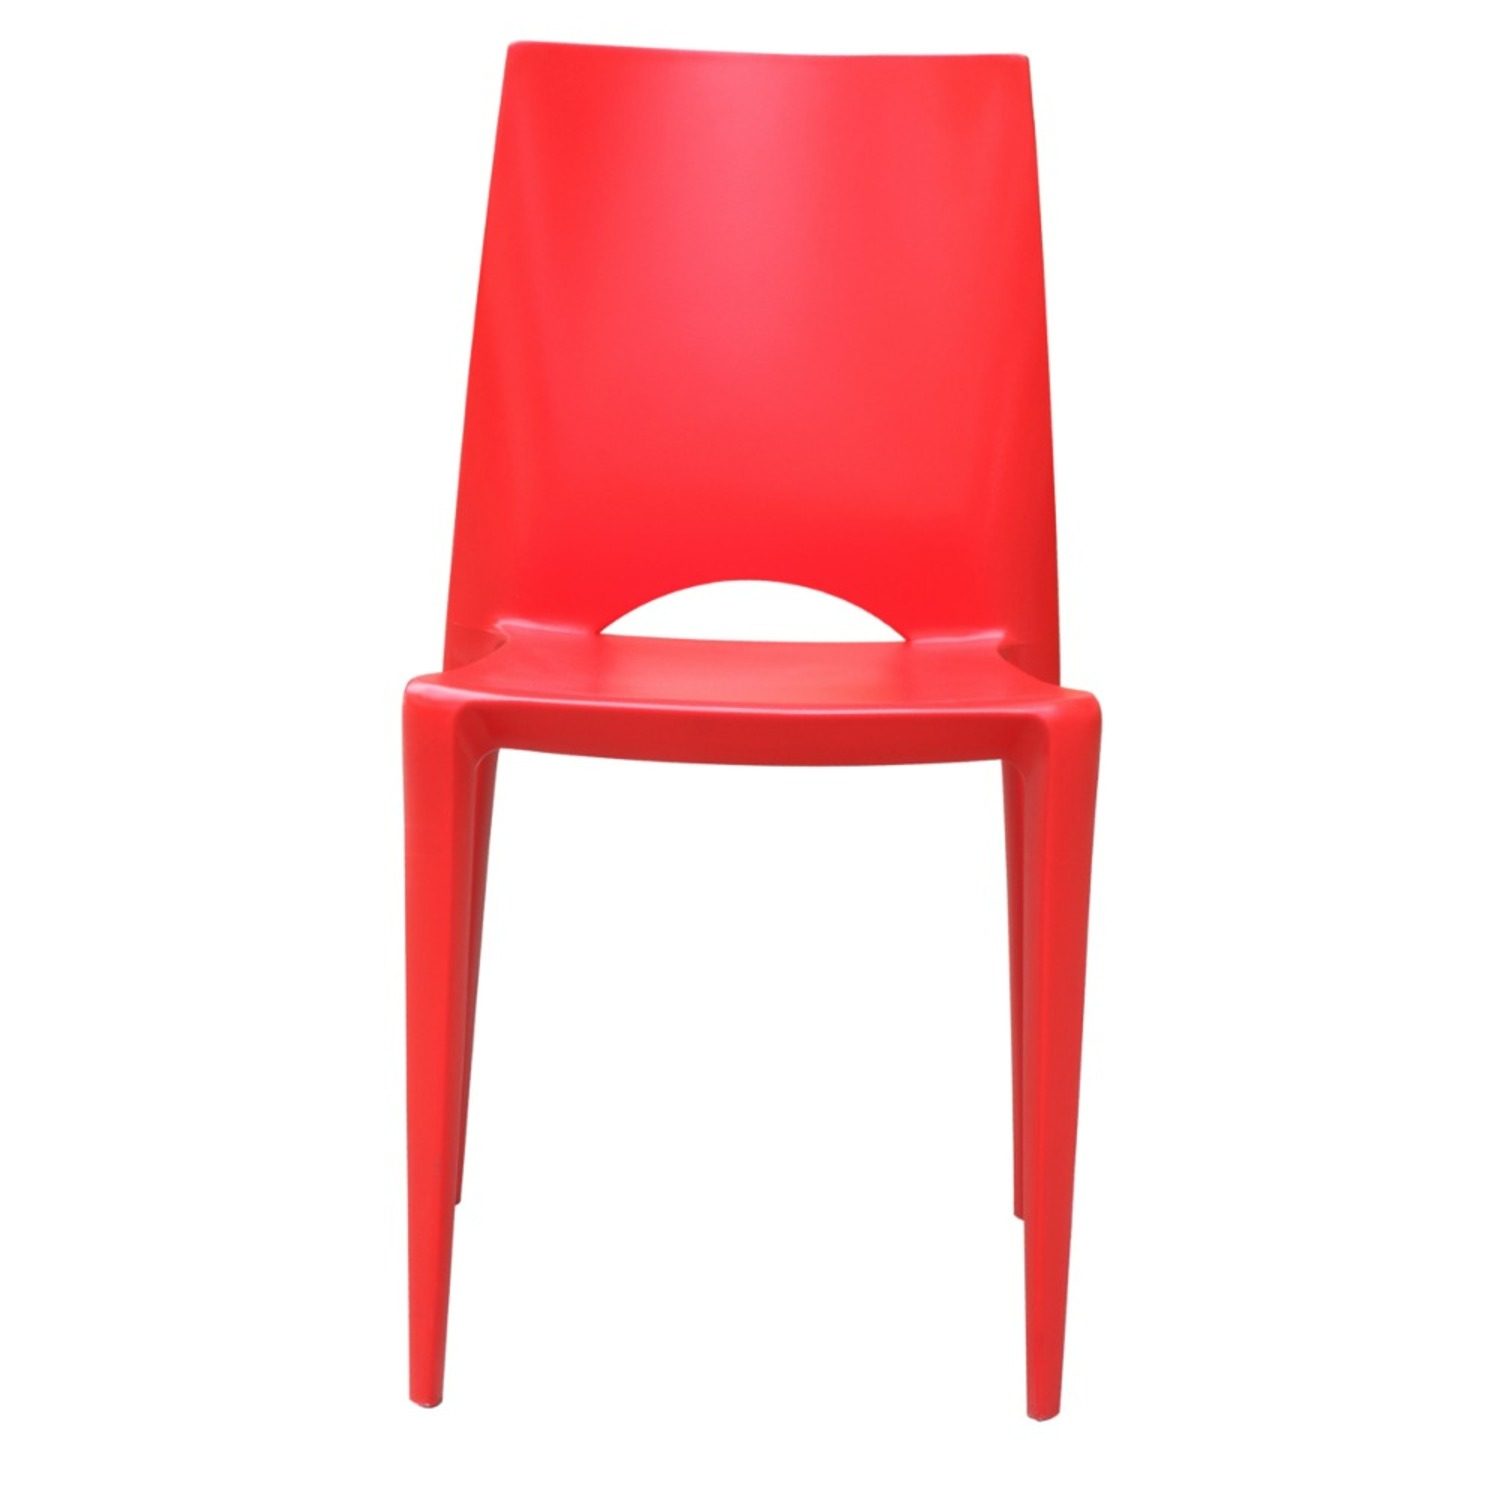 Dining Chair In Square-Shaped Red Finish - image-5